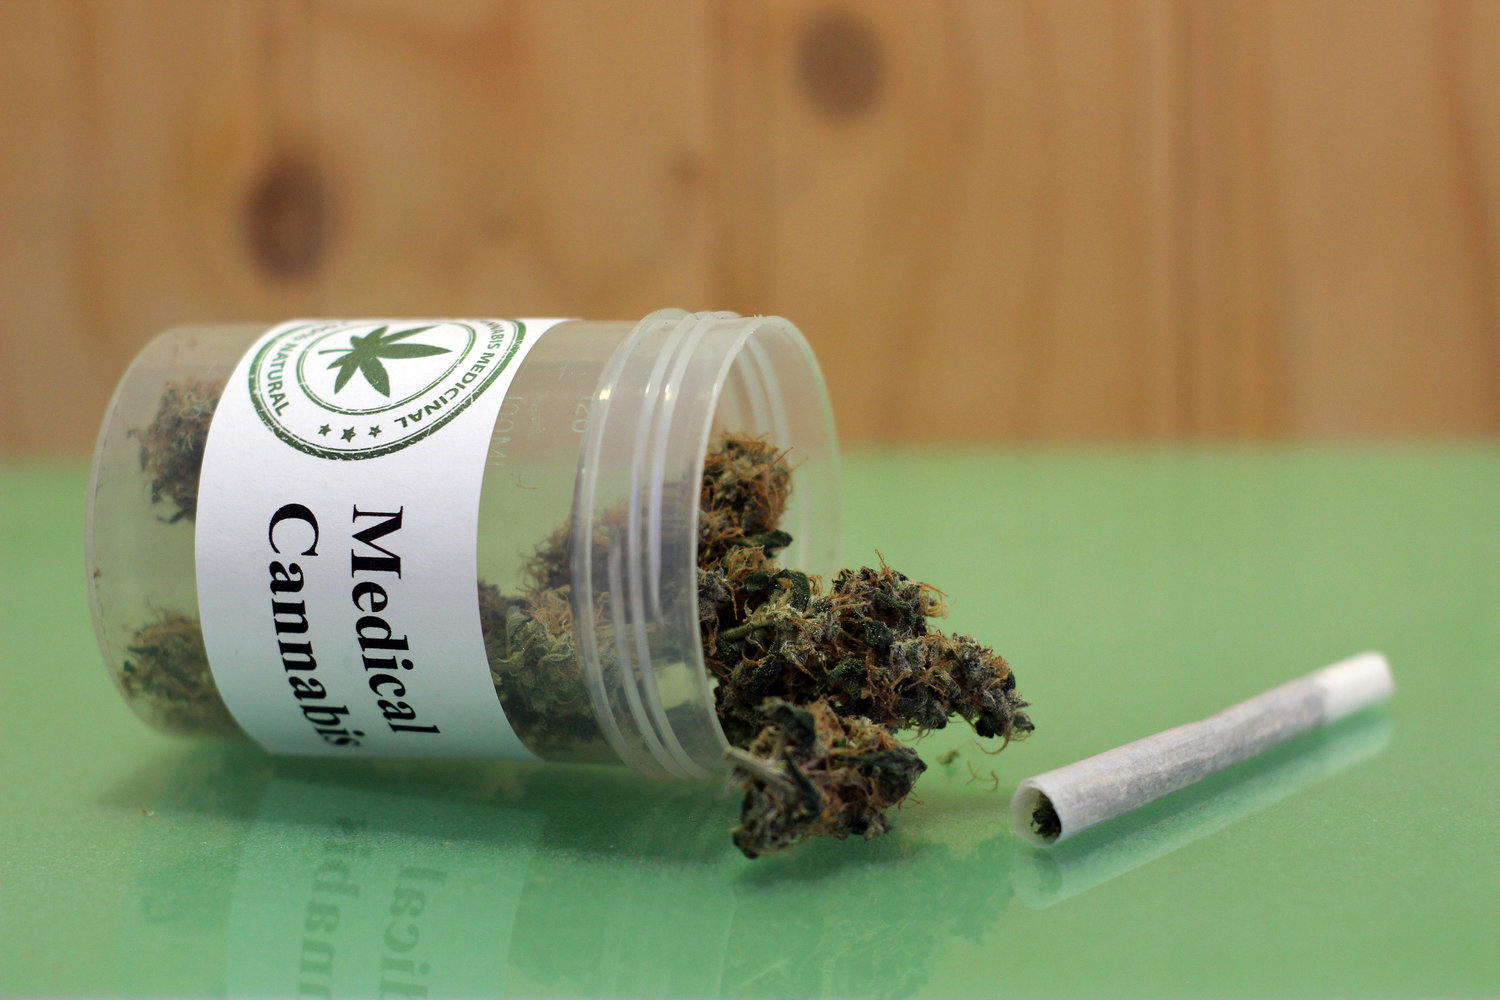 18 Things Medical Marijuana Does (Because It's Not About Getting